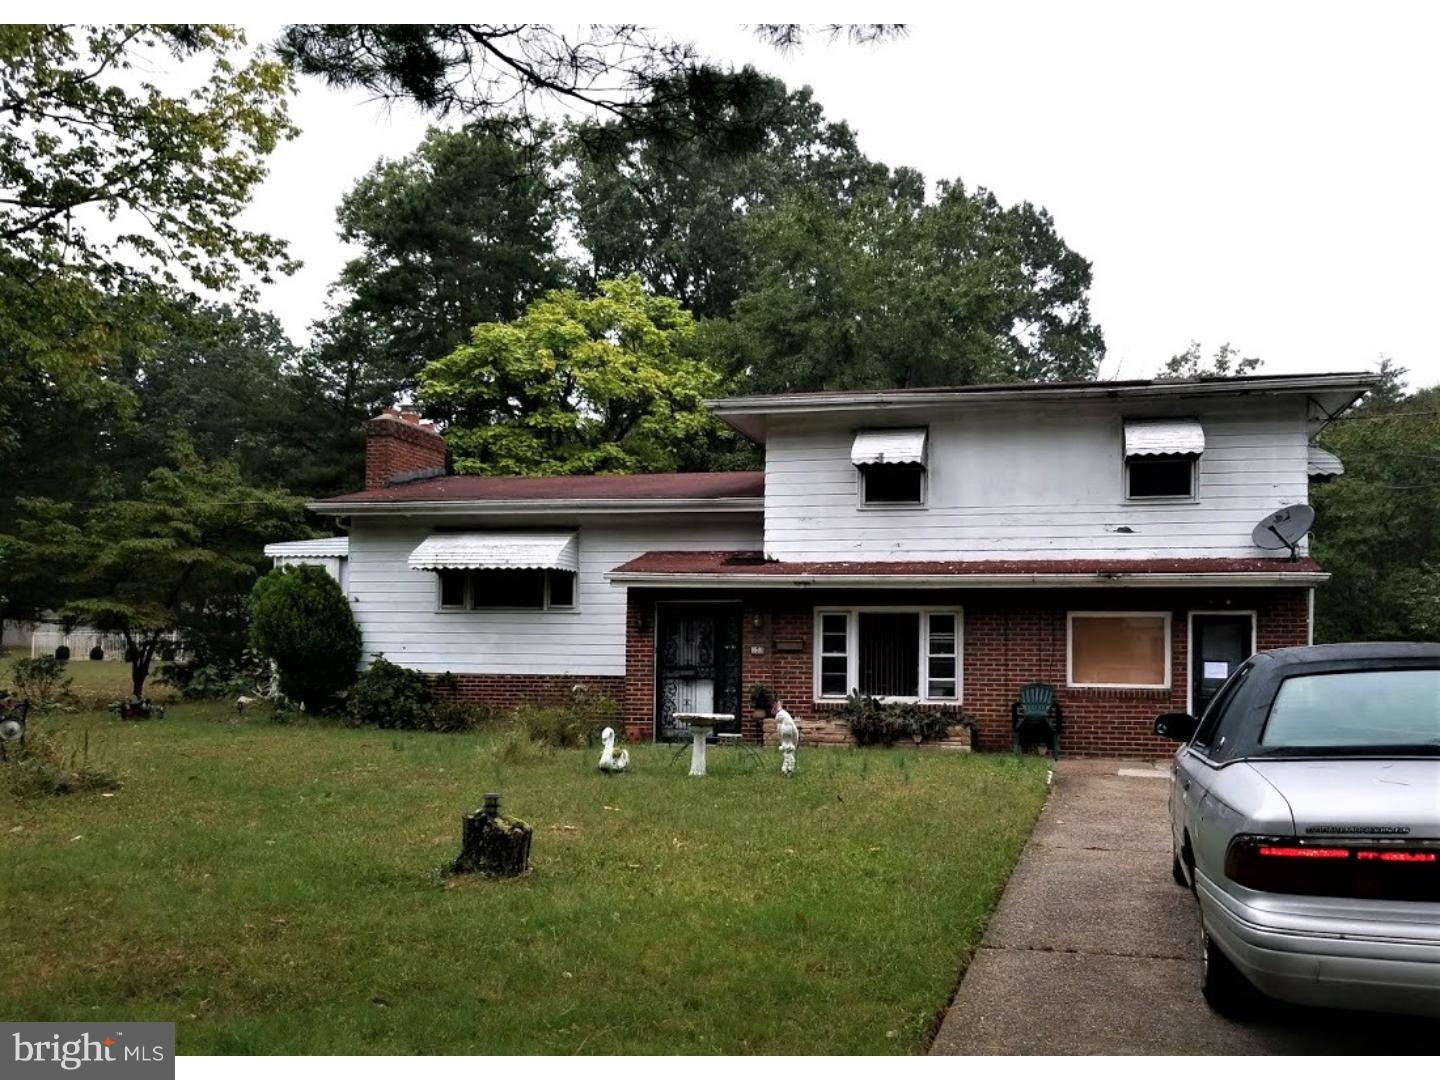 Single Family Home for Sale at 153 LA PIERRE Avenue Lawnside, New Jersey 08045 United States